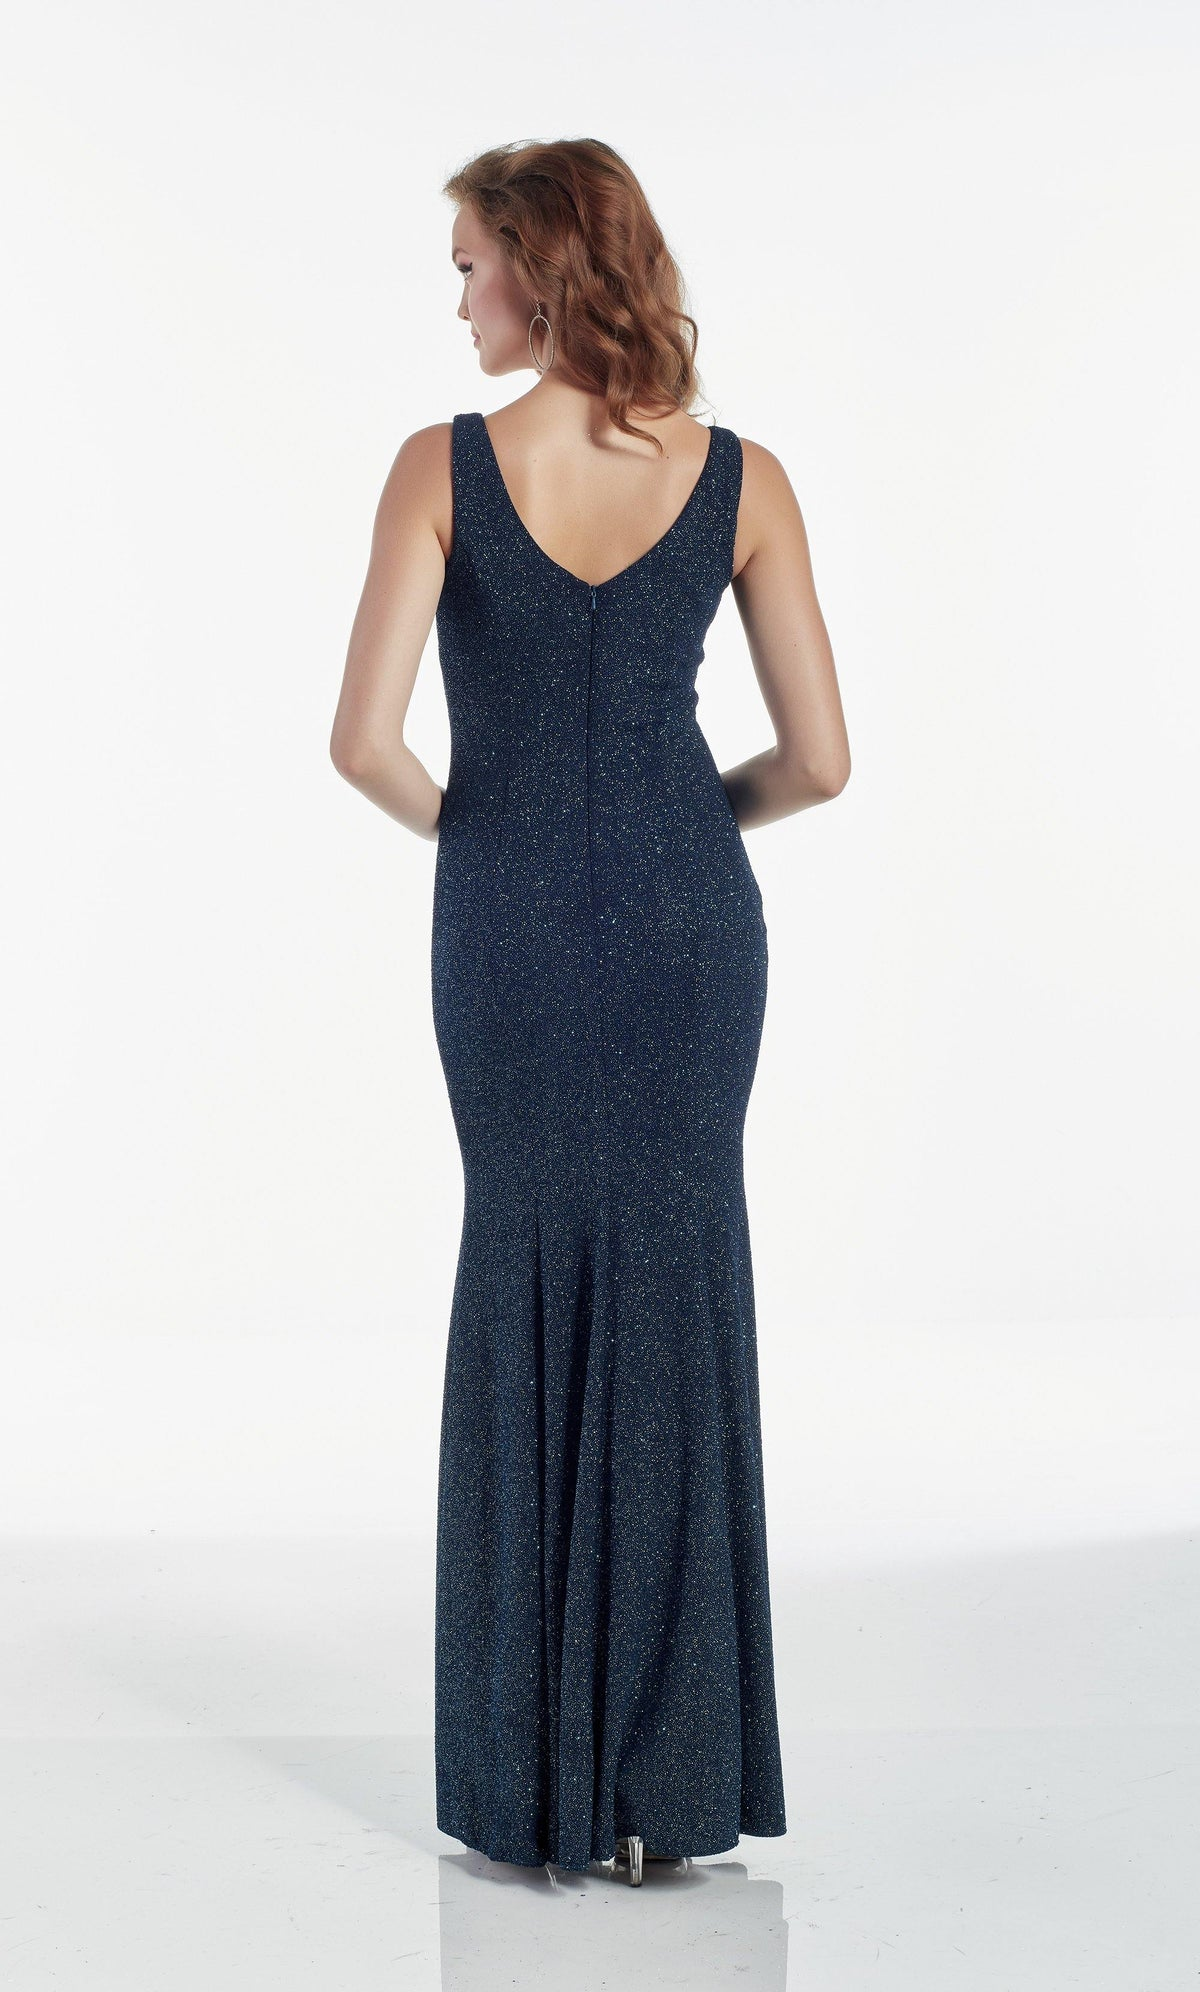 Blue Opal glitter jersey evening dress with a V shaped back